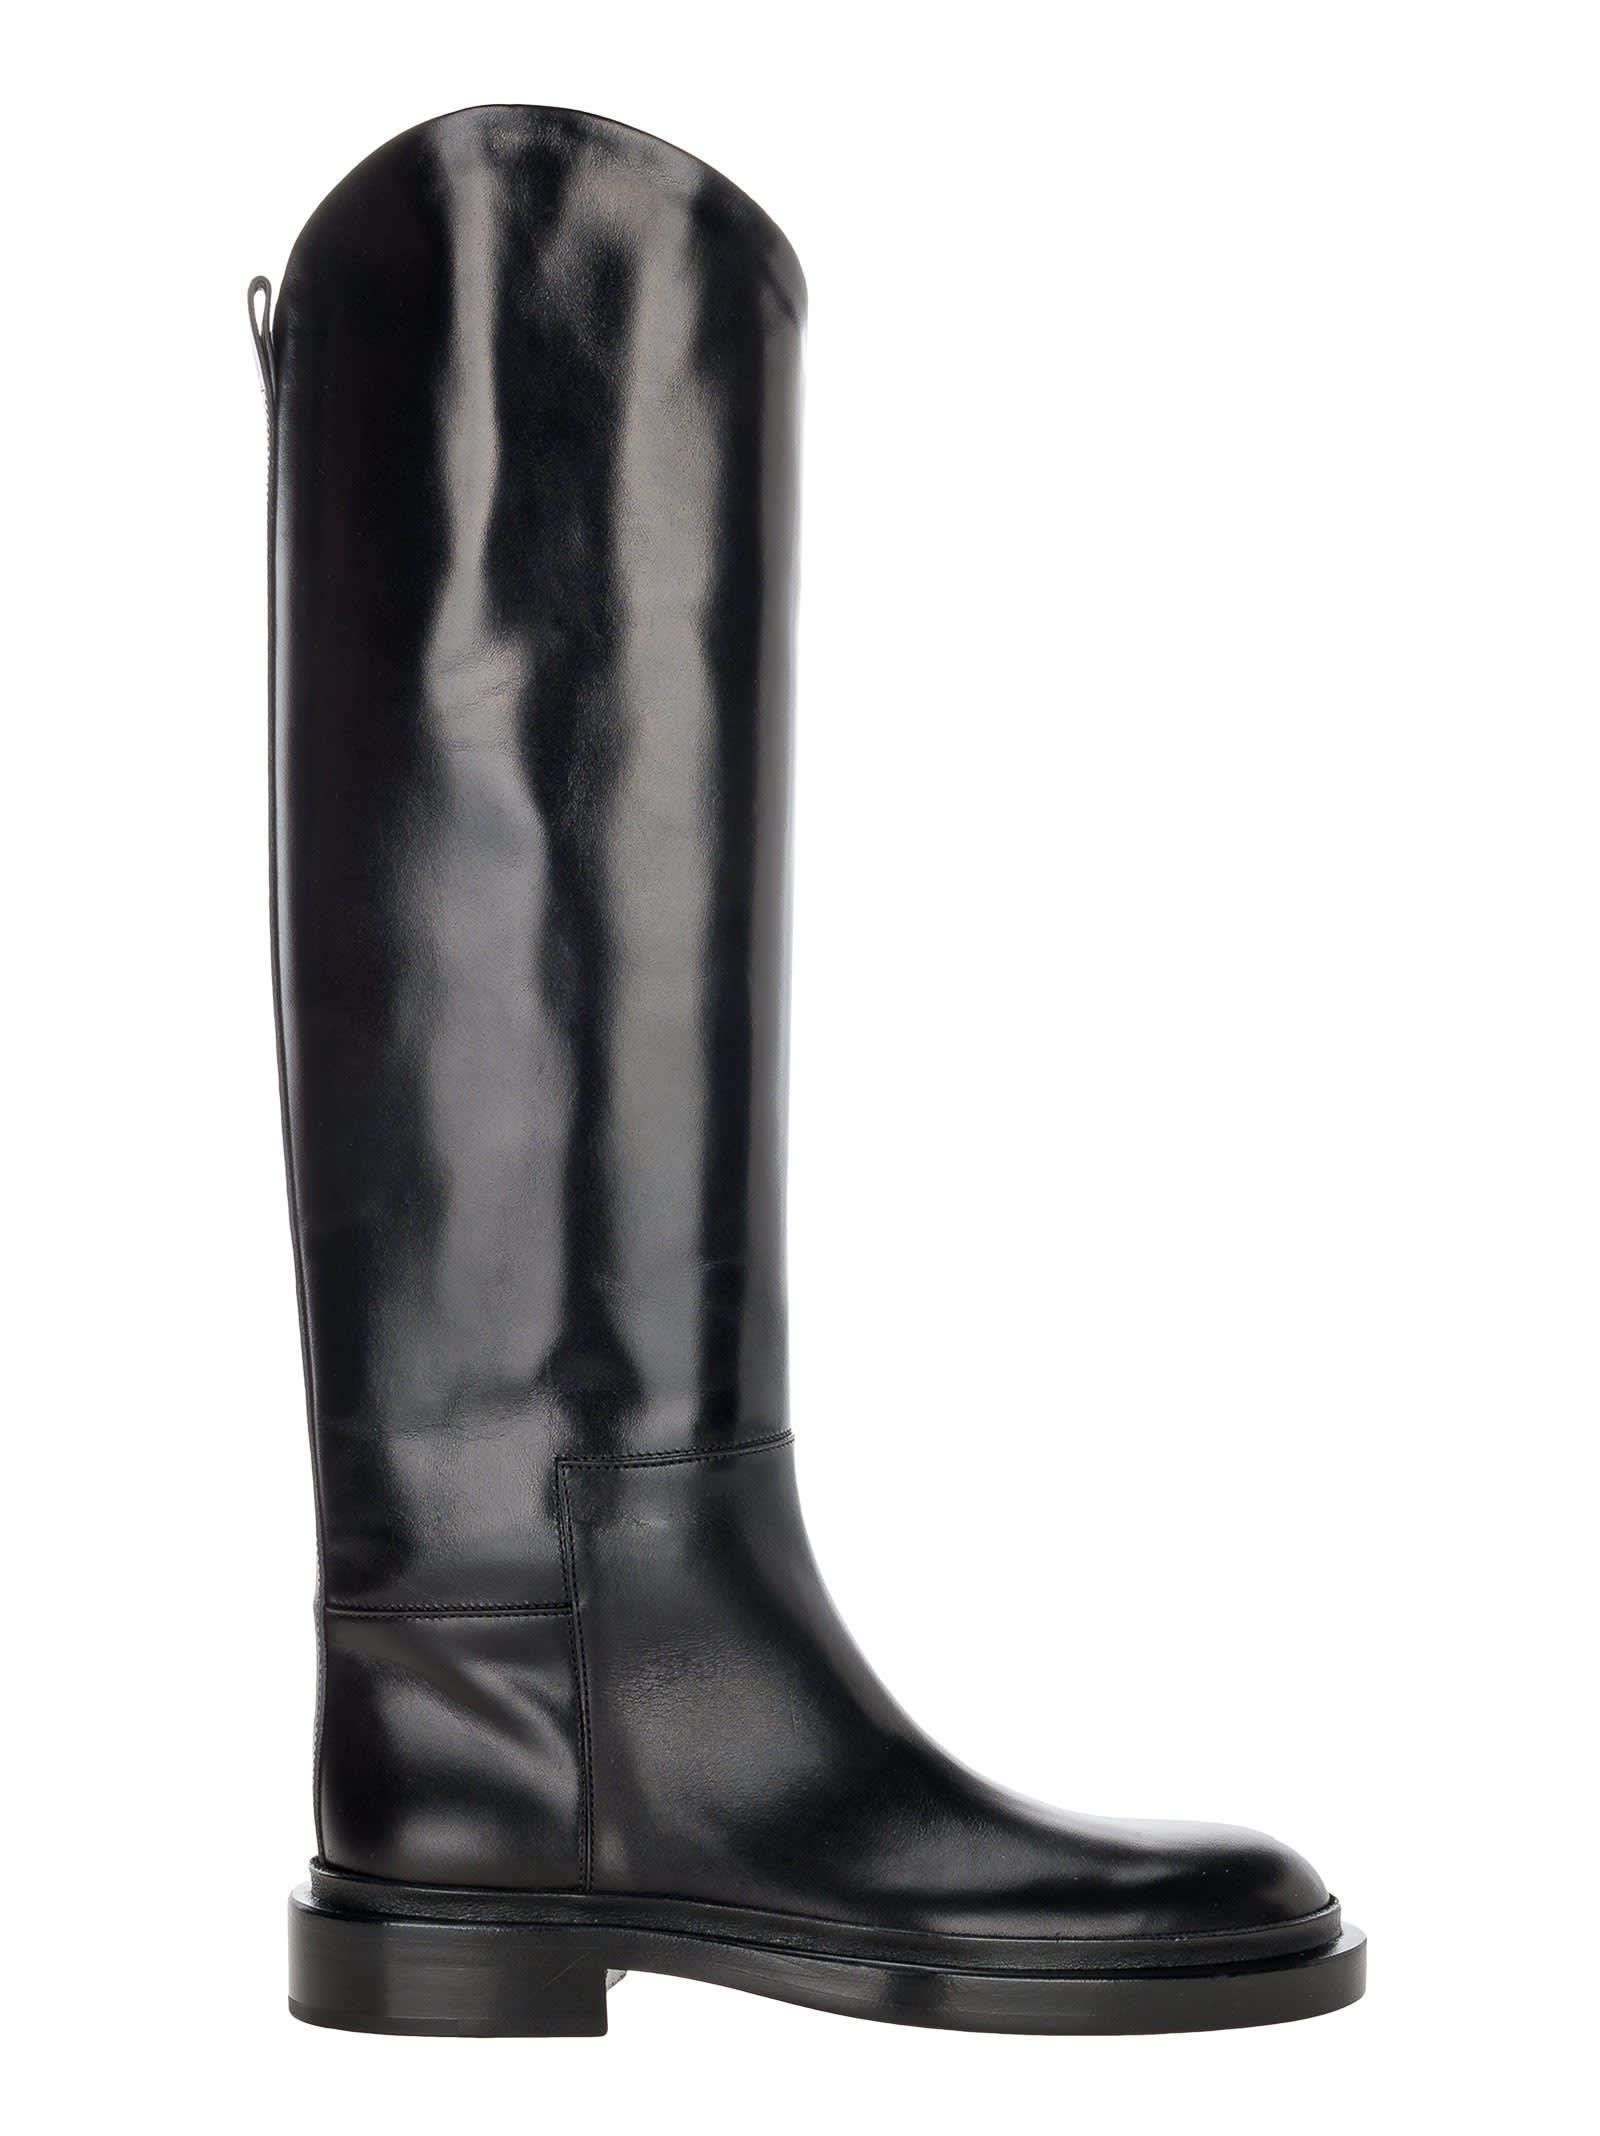 Buy Jil Sander High Leather Boots online, shop Jil Sander shoes with free shipping